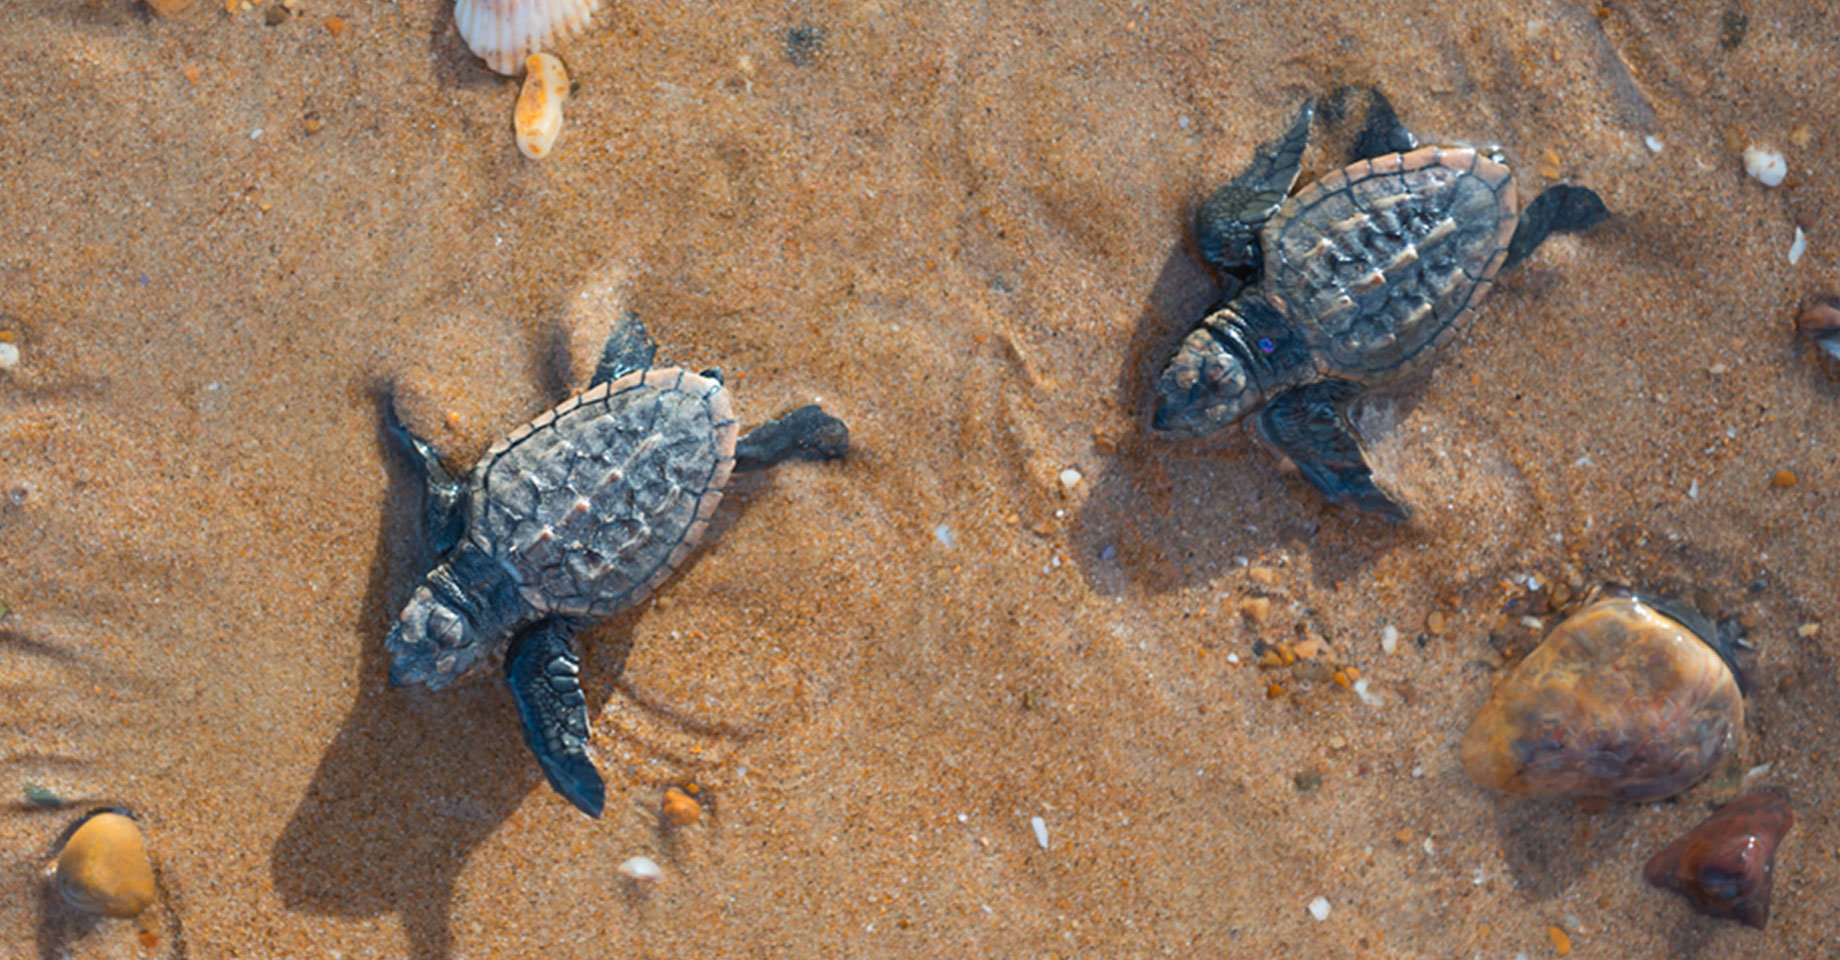 Baby turtles just hatched, in Mon Repos